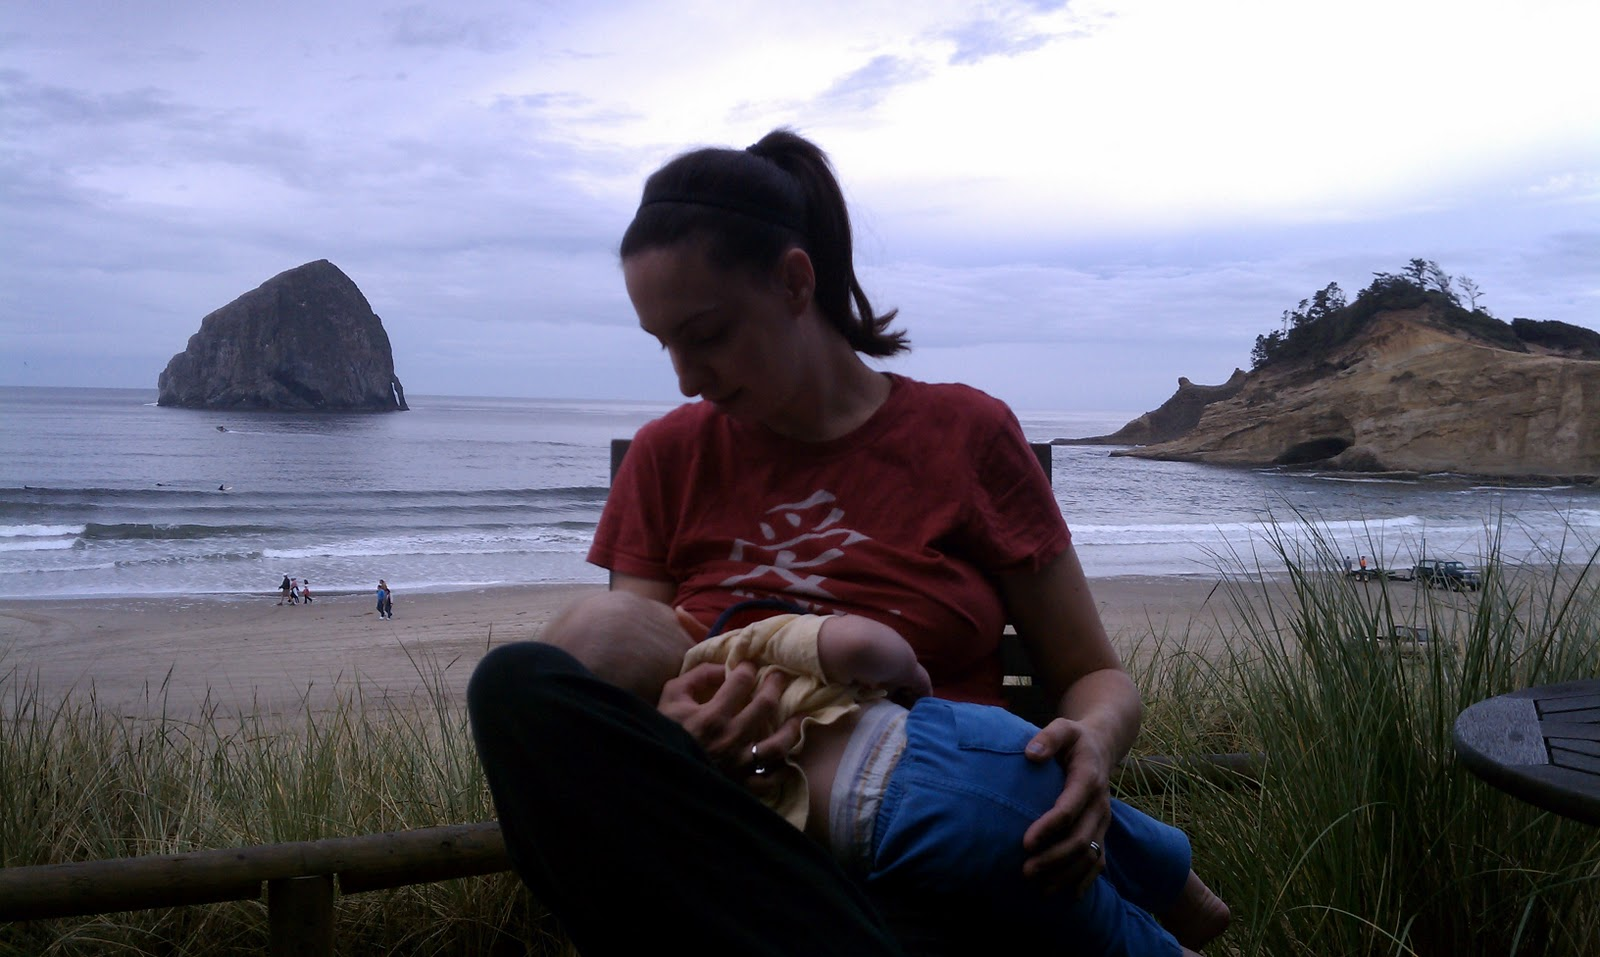 What is a good introductory for my philosophy on breastfeeding?